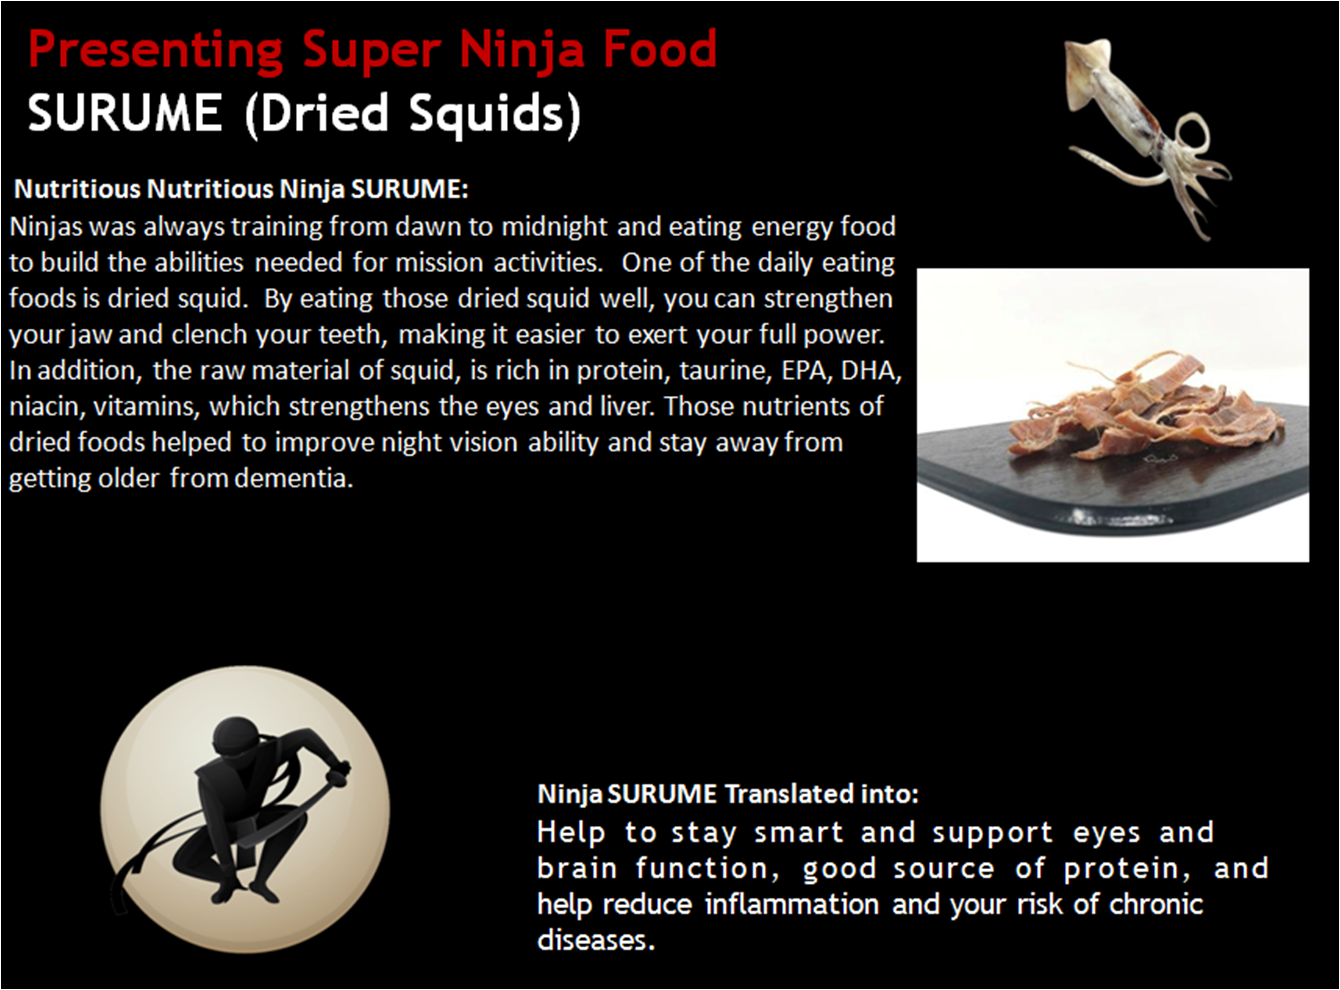 Nutritious Nutritious Ninja SURUME: Ninjas was always training from dawn to midnight and eating energy food to build the abilities needed for mission activities.  One of the daily eating foods is dried squid.  By eating those dried squid well, you can strengthen your jaw and clench your teeth, making it easier to exert your full power. In addition, the raw material of squid, is rich in protein, taurine, EPA, DHA, niacin, vitamins, which strengthens the eyes and liver. Those nutrients of dried foods helped to improve night vision ability and stay away from getting older from dementia